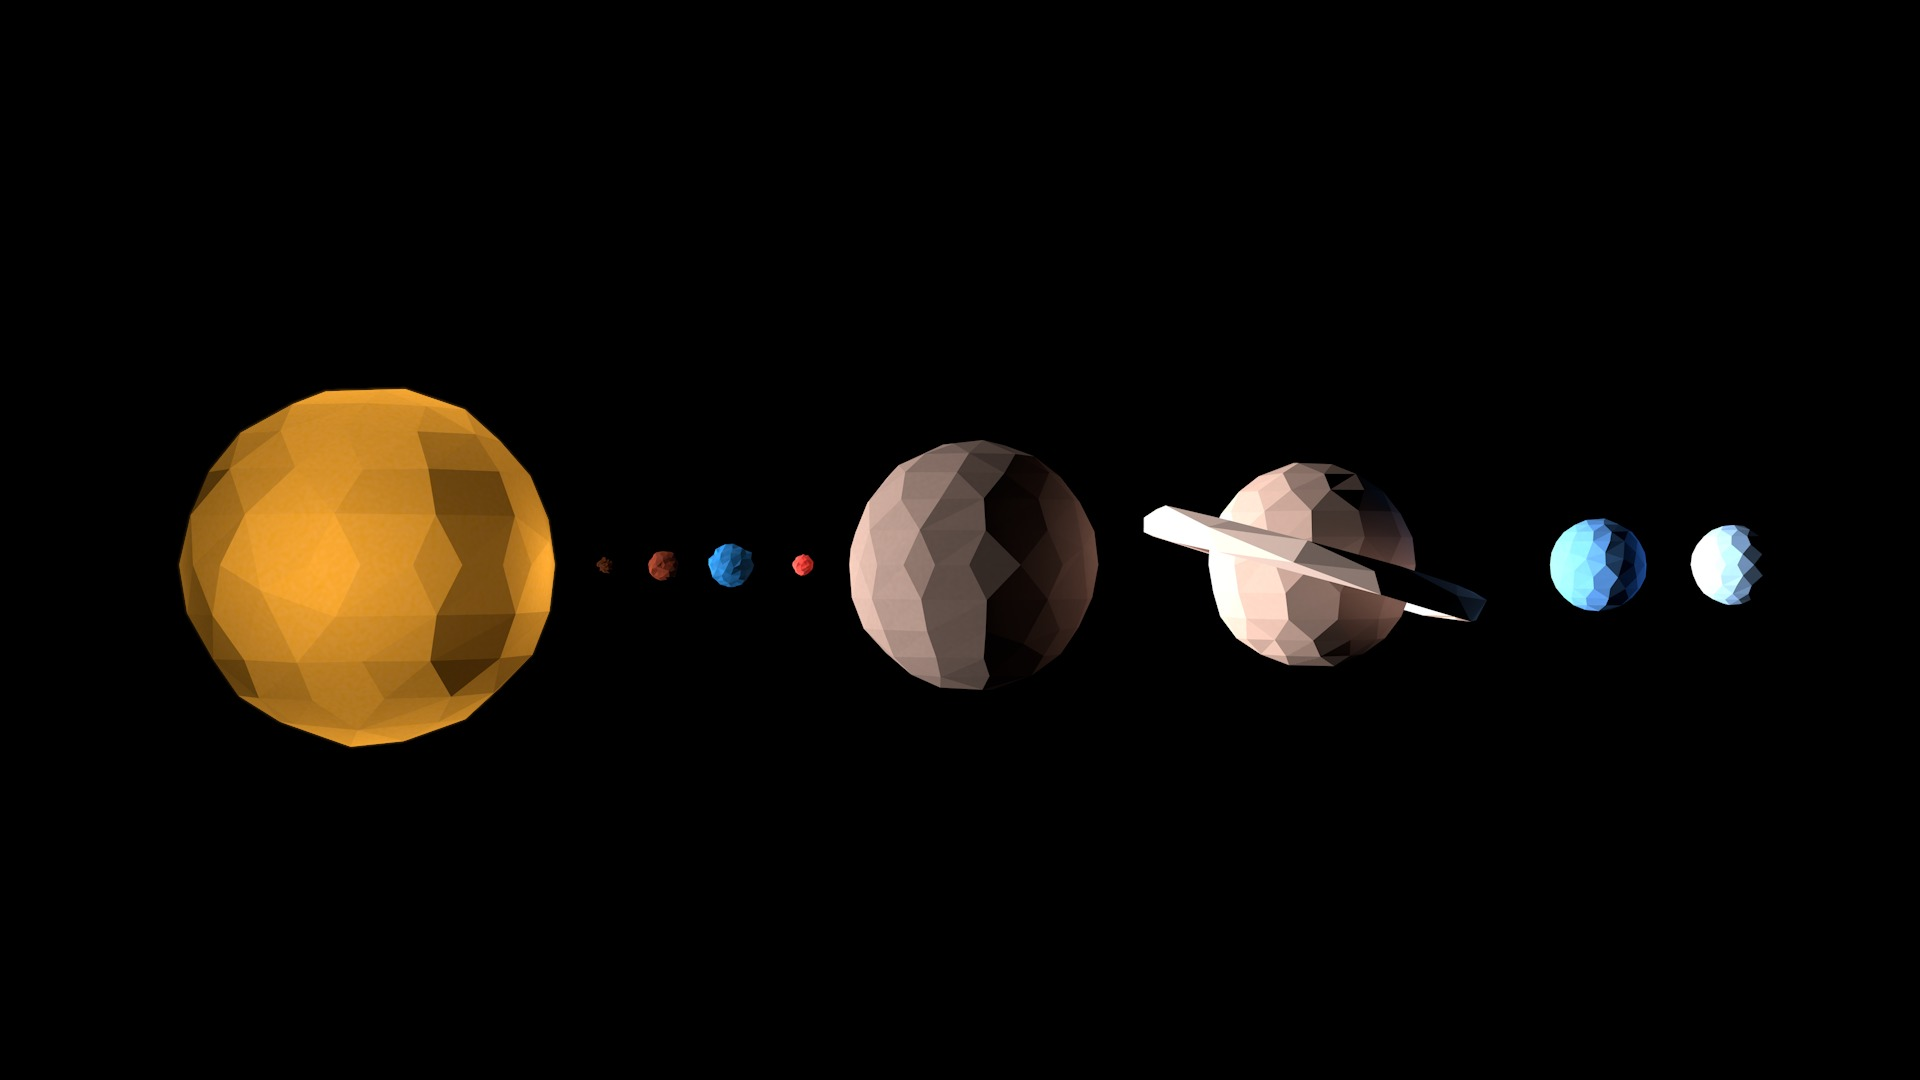 best-ideas-about-Solar-System-on-Pinterest-1920%C3%971080-Solar-System-Wallpape-wallpaper-wp3403146